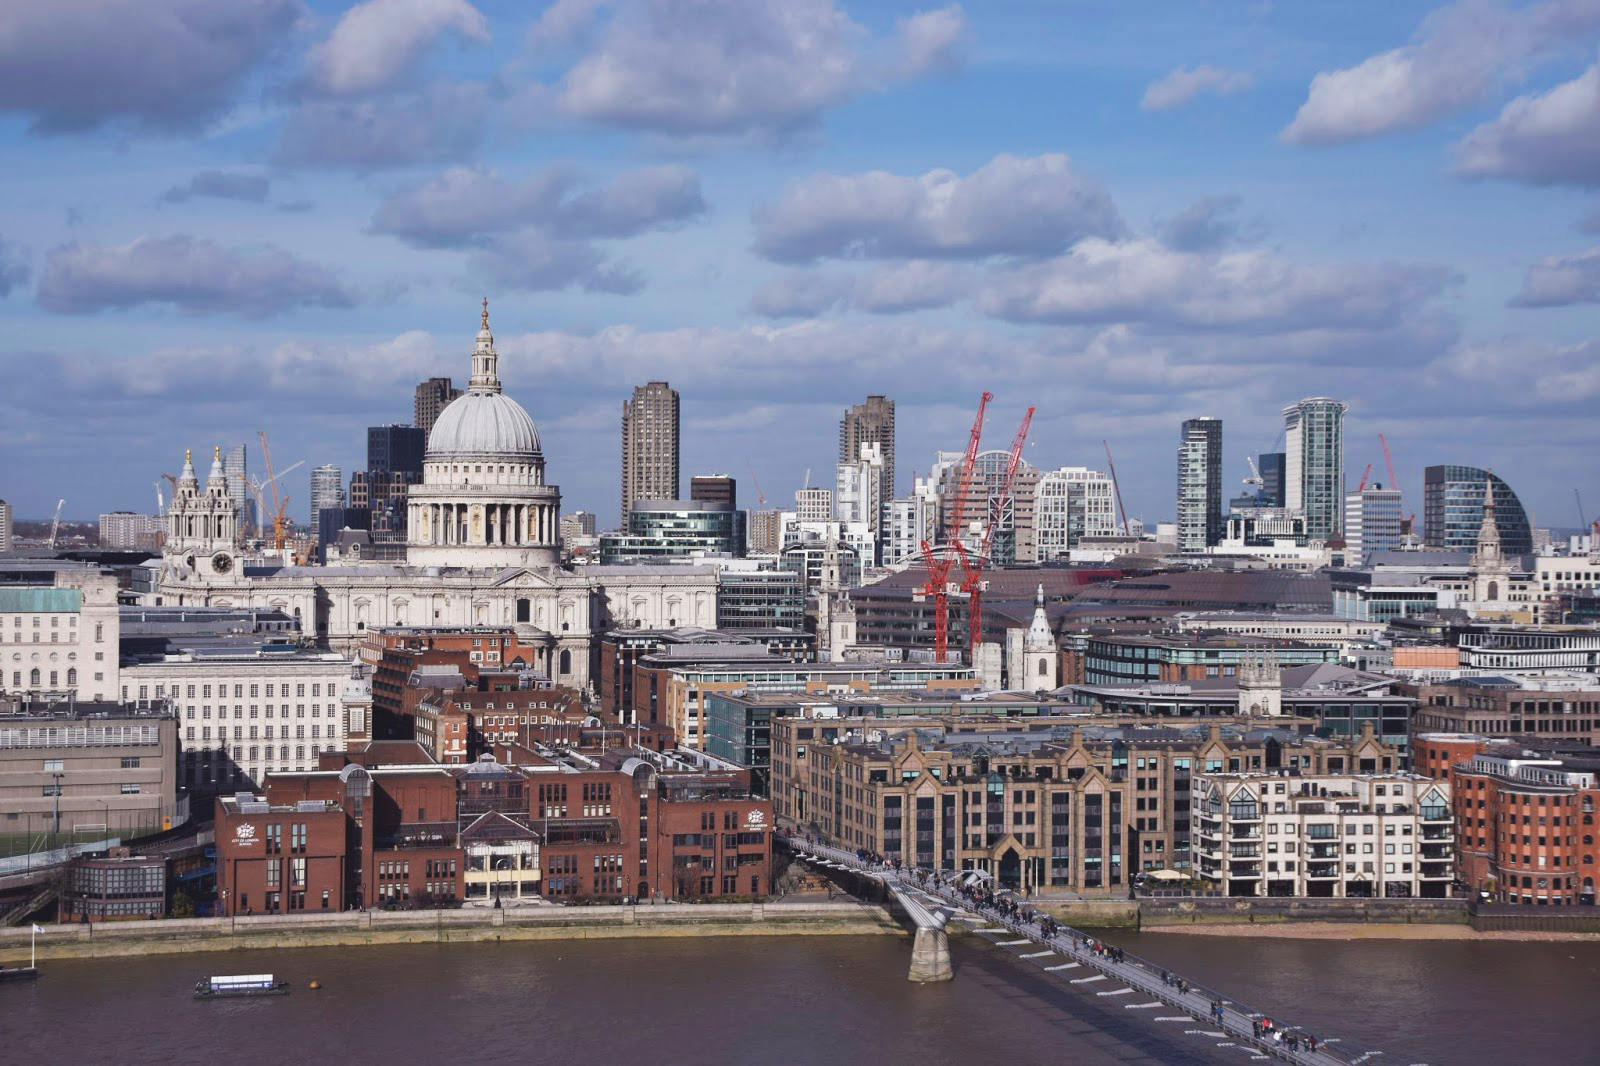 Taken from the top of the Tate Modern gallery in London. The London skyline is in full view with noticeable buildings such as St Pauls down below.